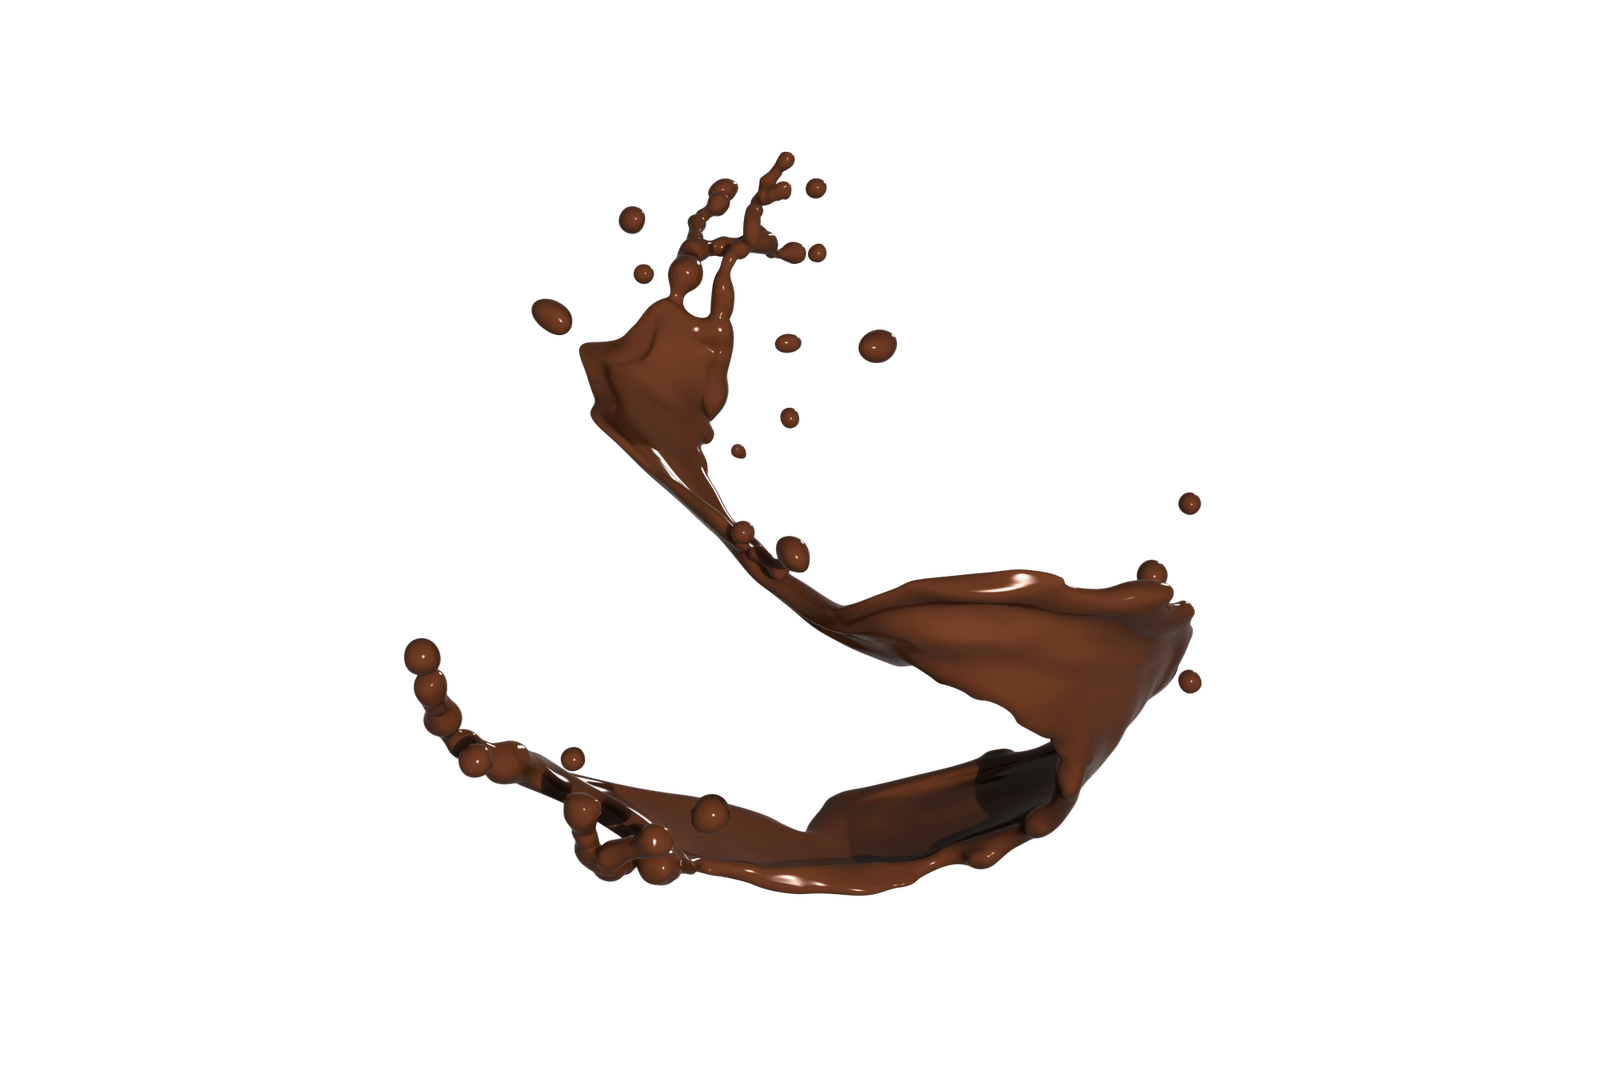 Chocolate milk splash png. Transparent stickpng